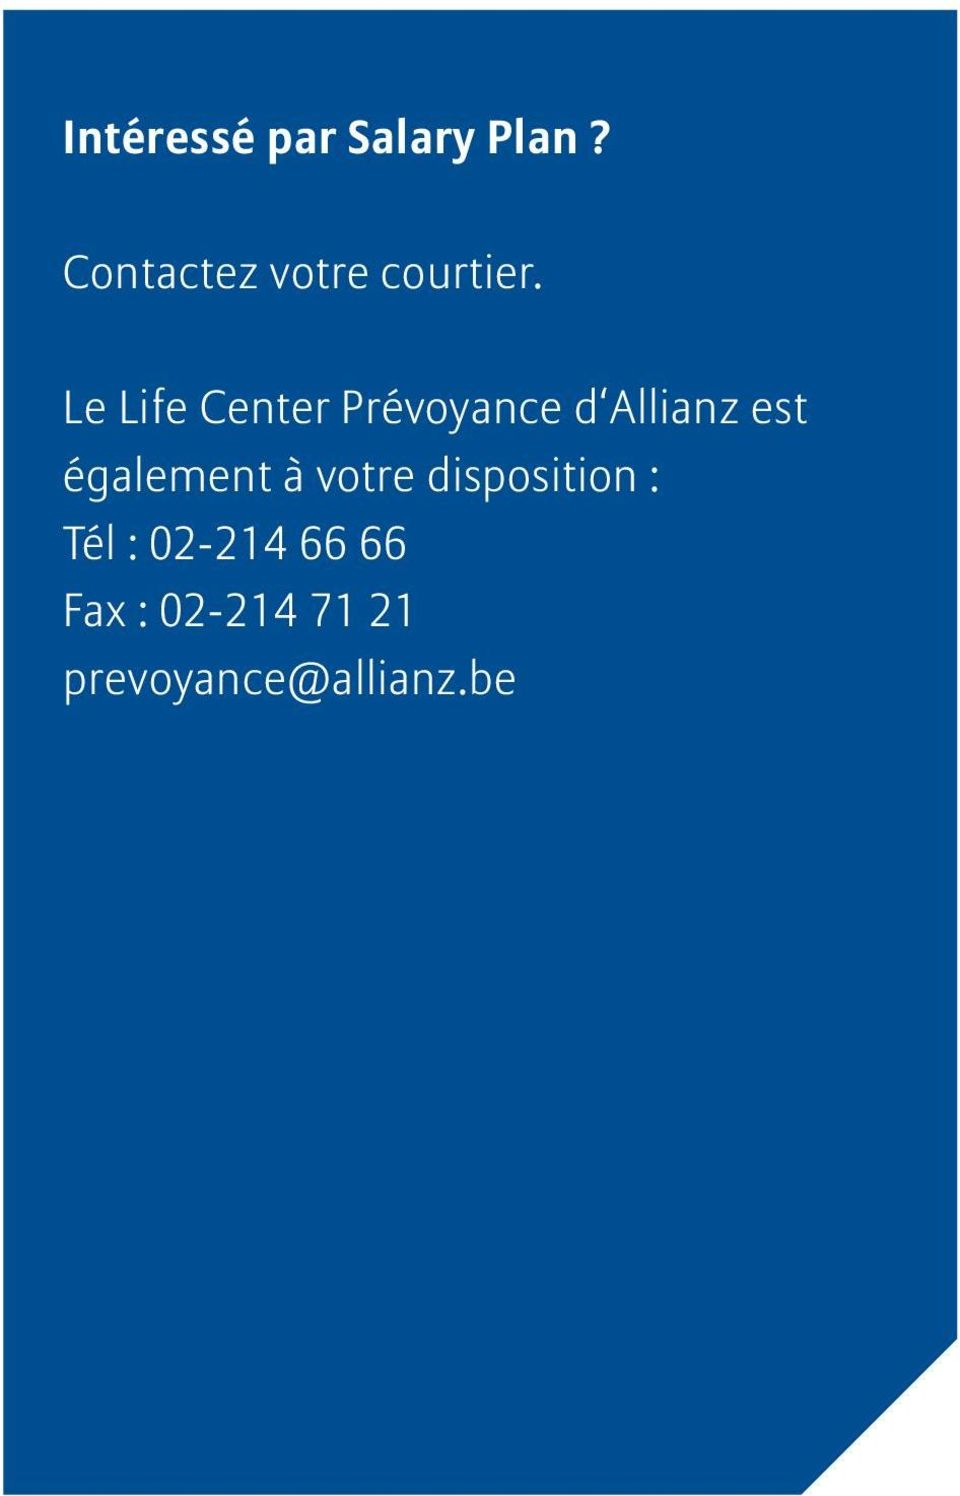 Le Life Center Prévoyance d Allianz est